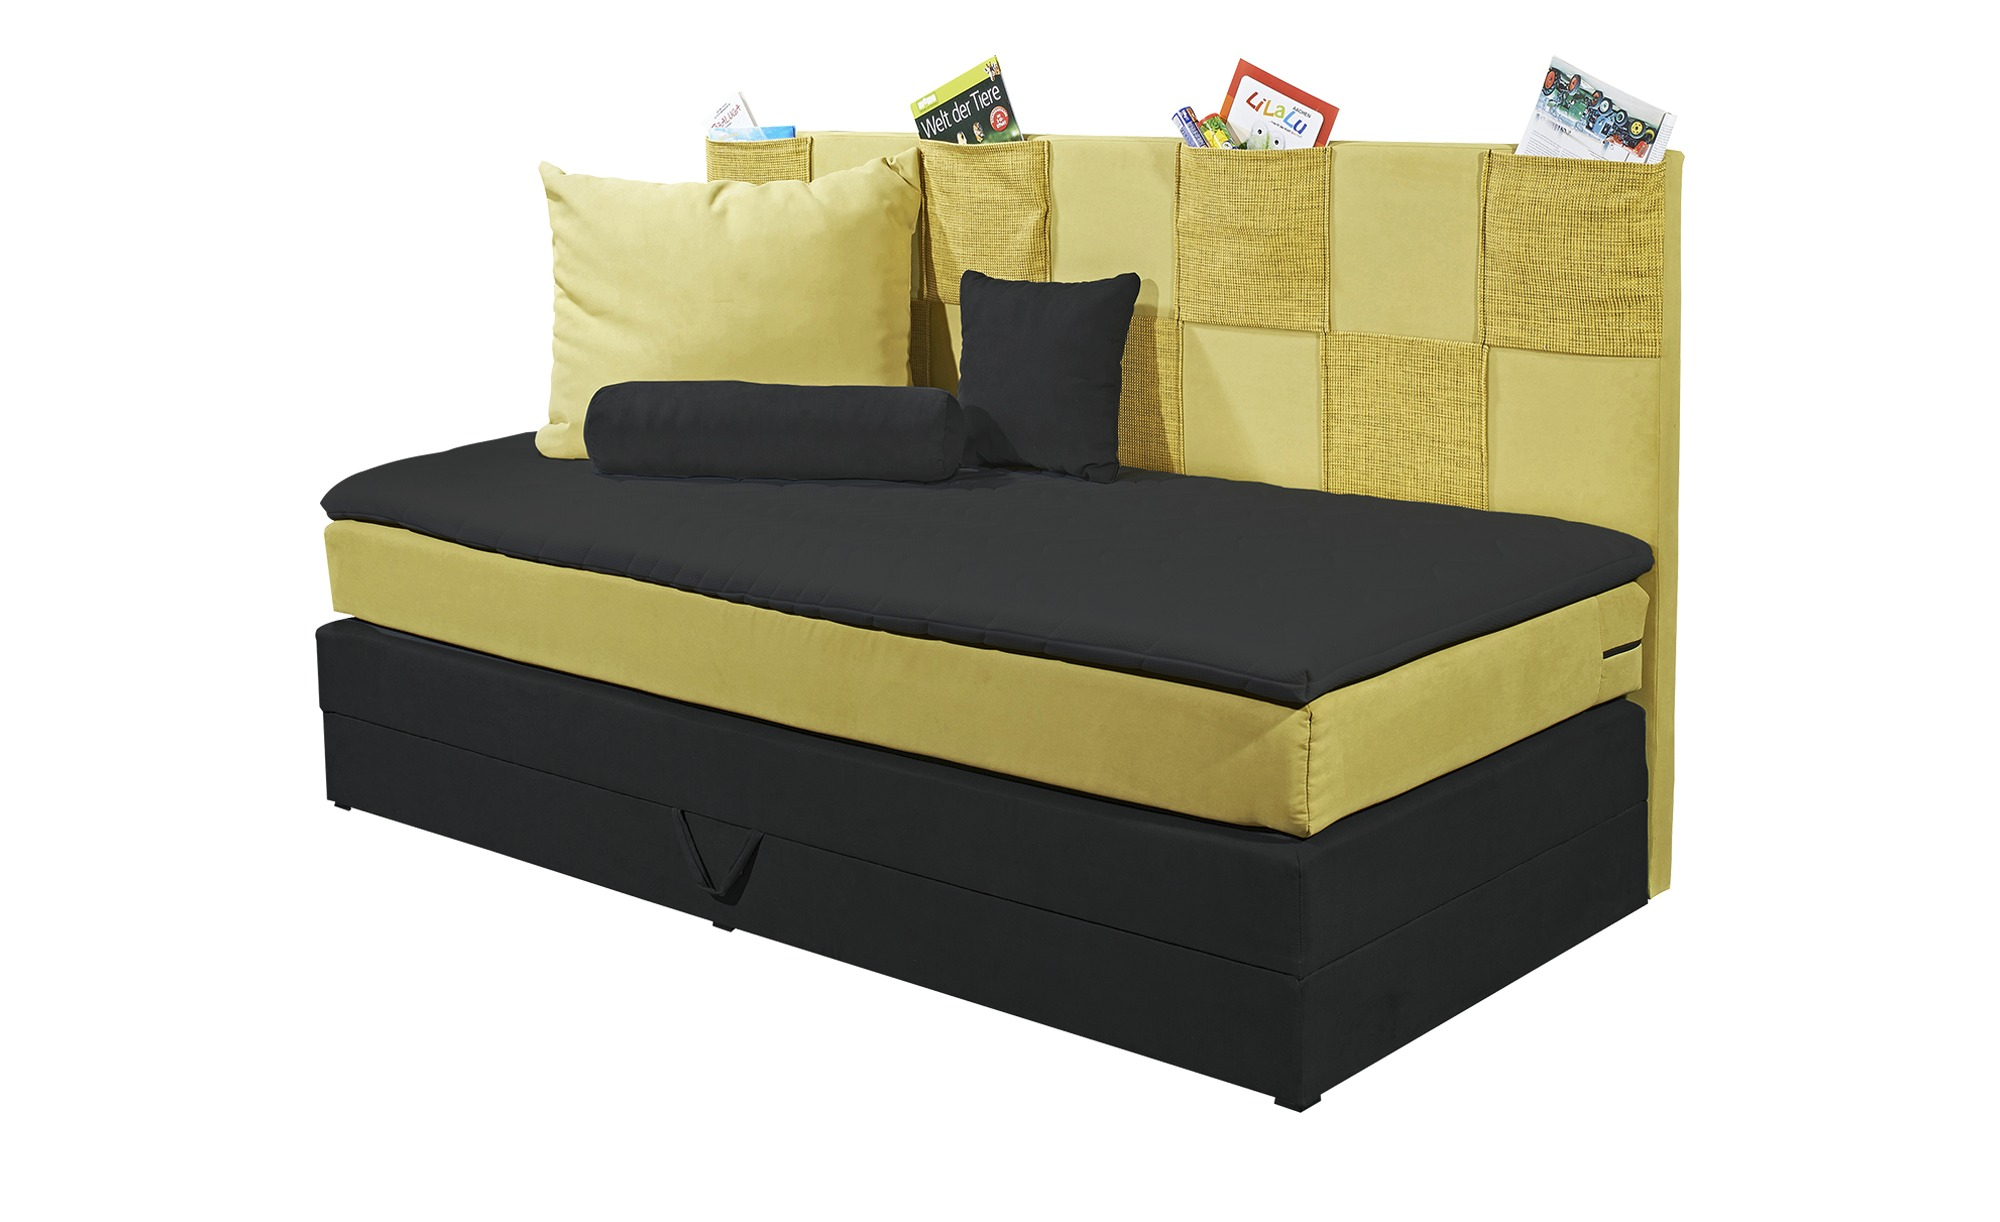 einzel boxspringbett gelb mit bettkasten clever breite 98. Black Bedroom Furniture Sets. Home Design Ideas